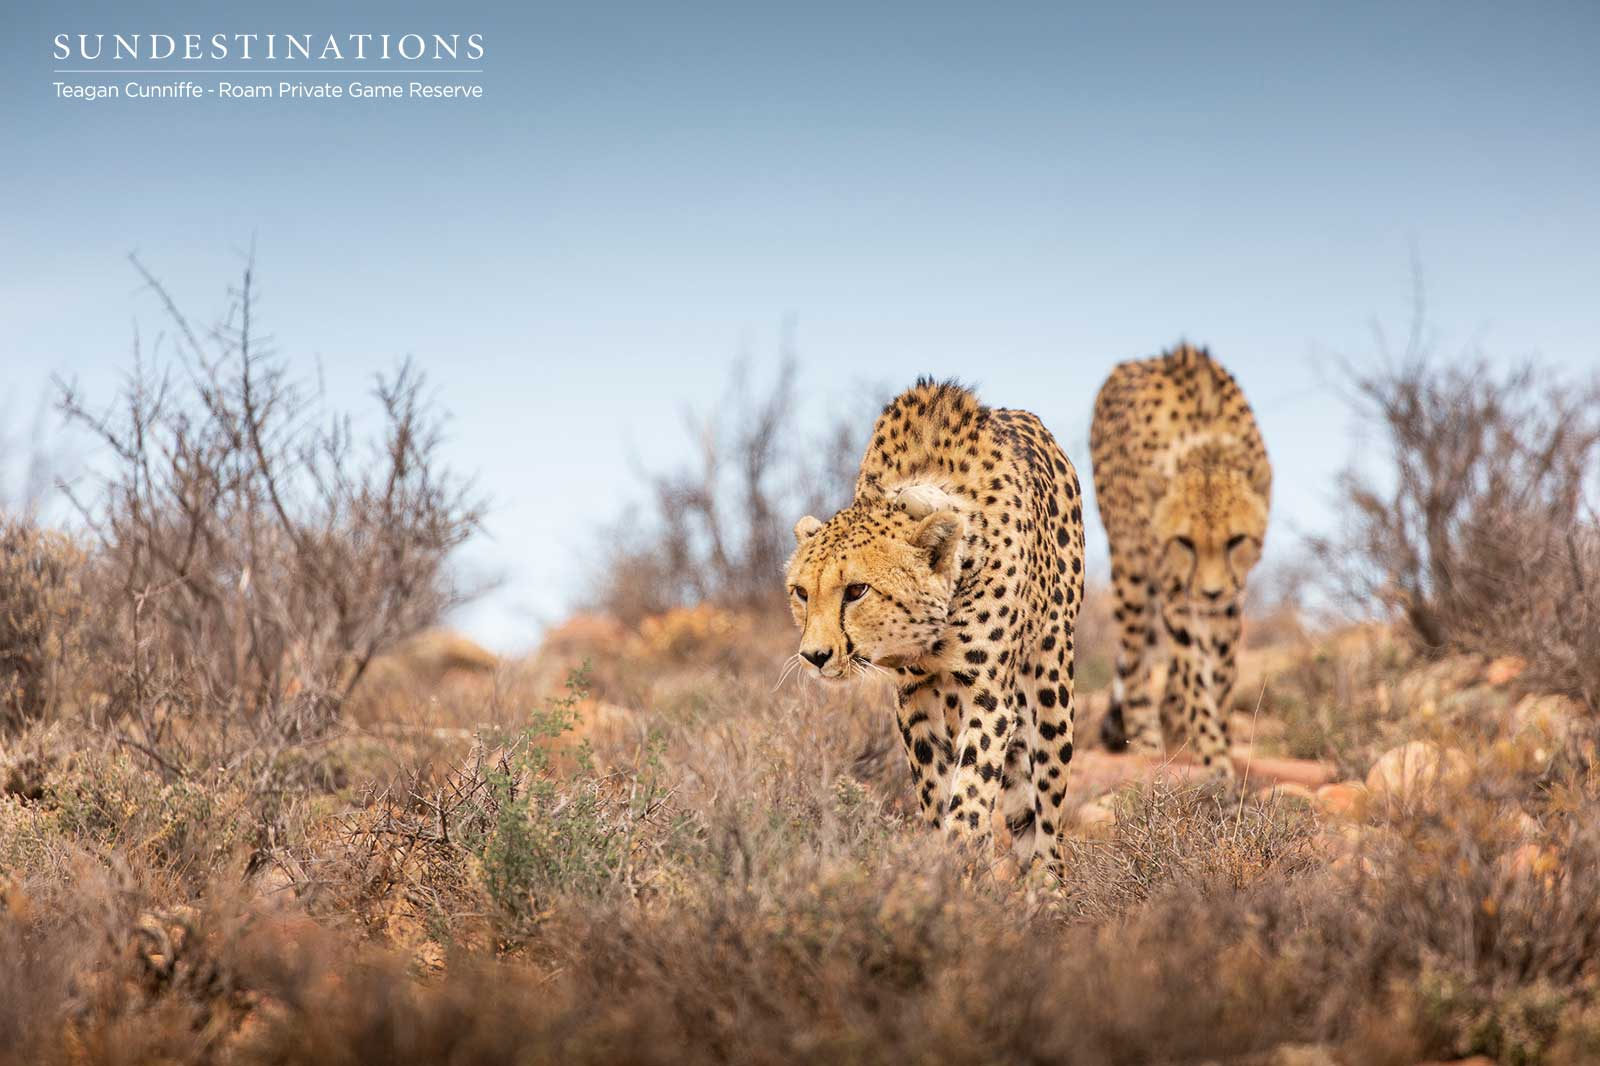 A Warm Welcome to the Female Cheetah at Roam Private Game Reserve